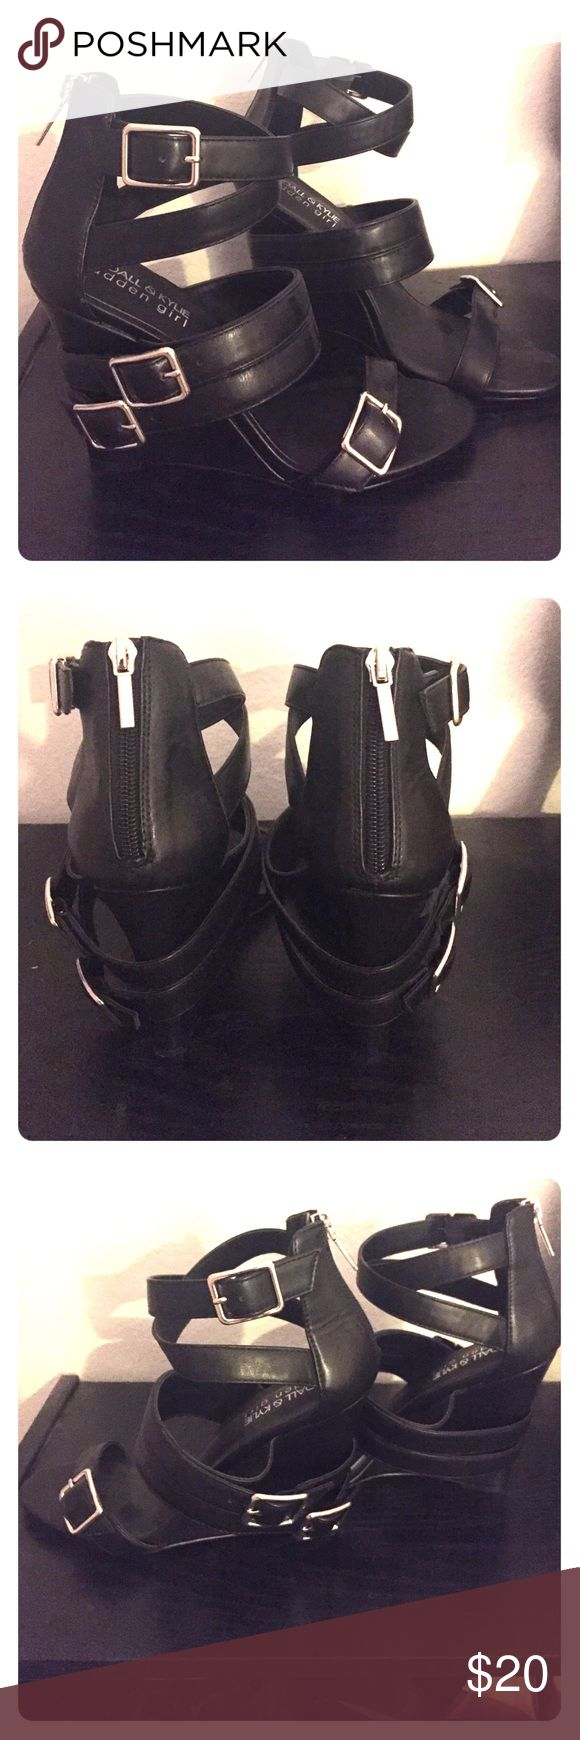 Kendall and Kylie size 8.5 wedges Kendall and Kylie size 8.5 black wedges. Patent leather, strappy front, statement buckles on side of shoes, and zip up back. Purchased from Nordstrom rack, never worn. Kendall & Kylie Shoes Wedges